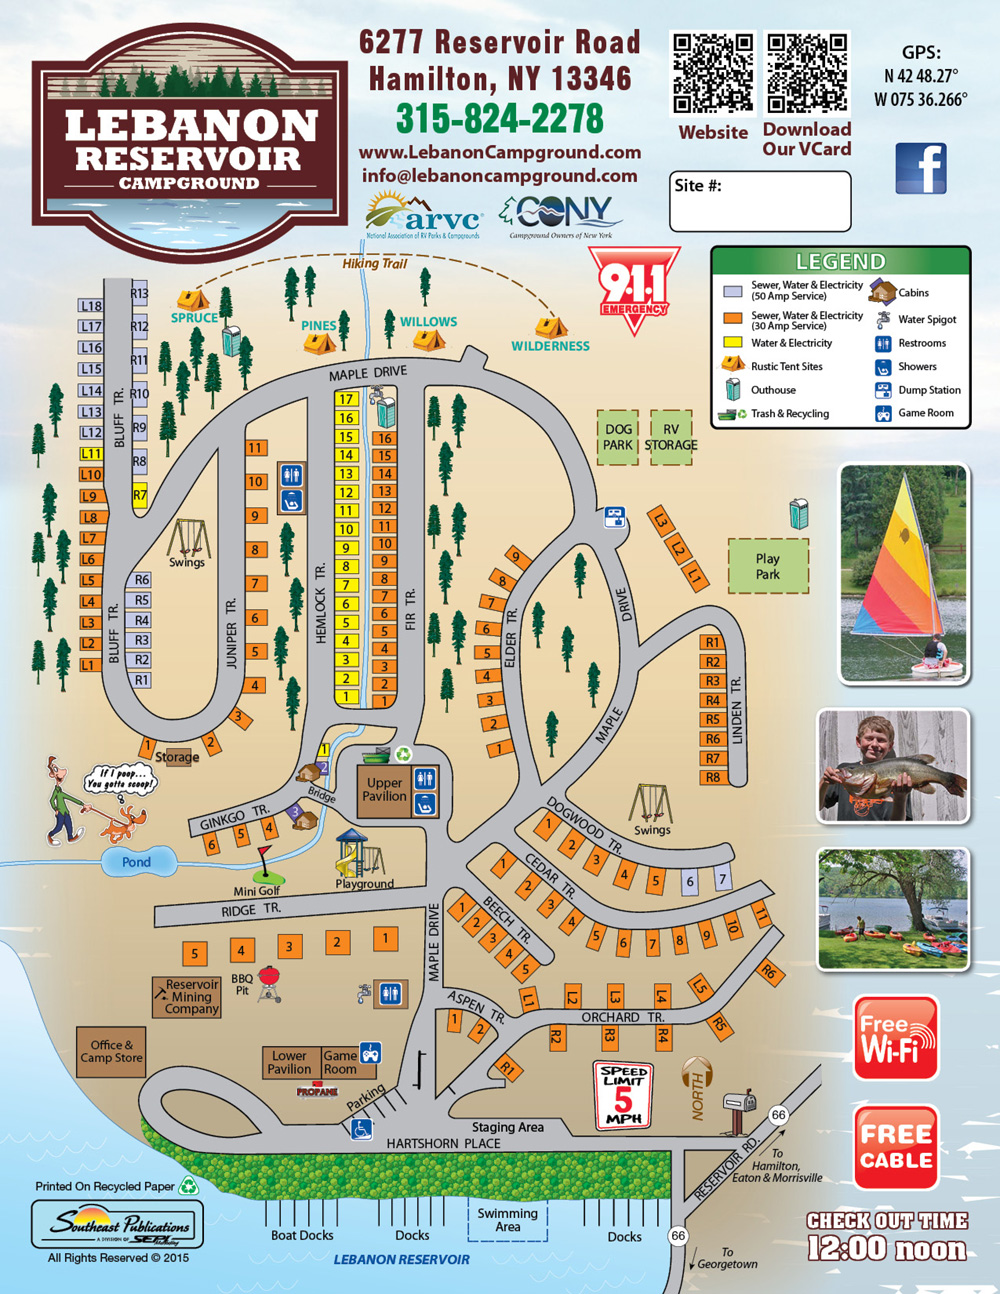 Lebanon Reservoir Campground site map